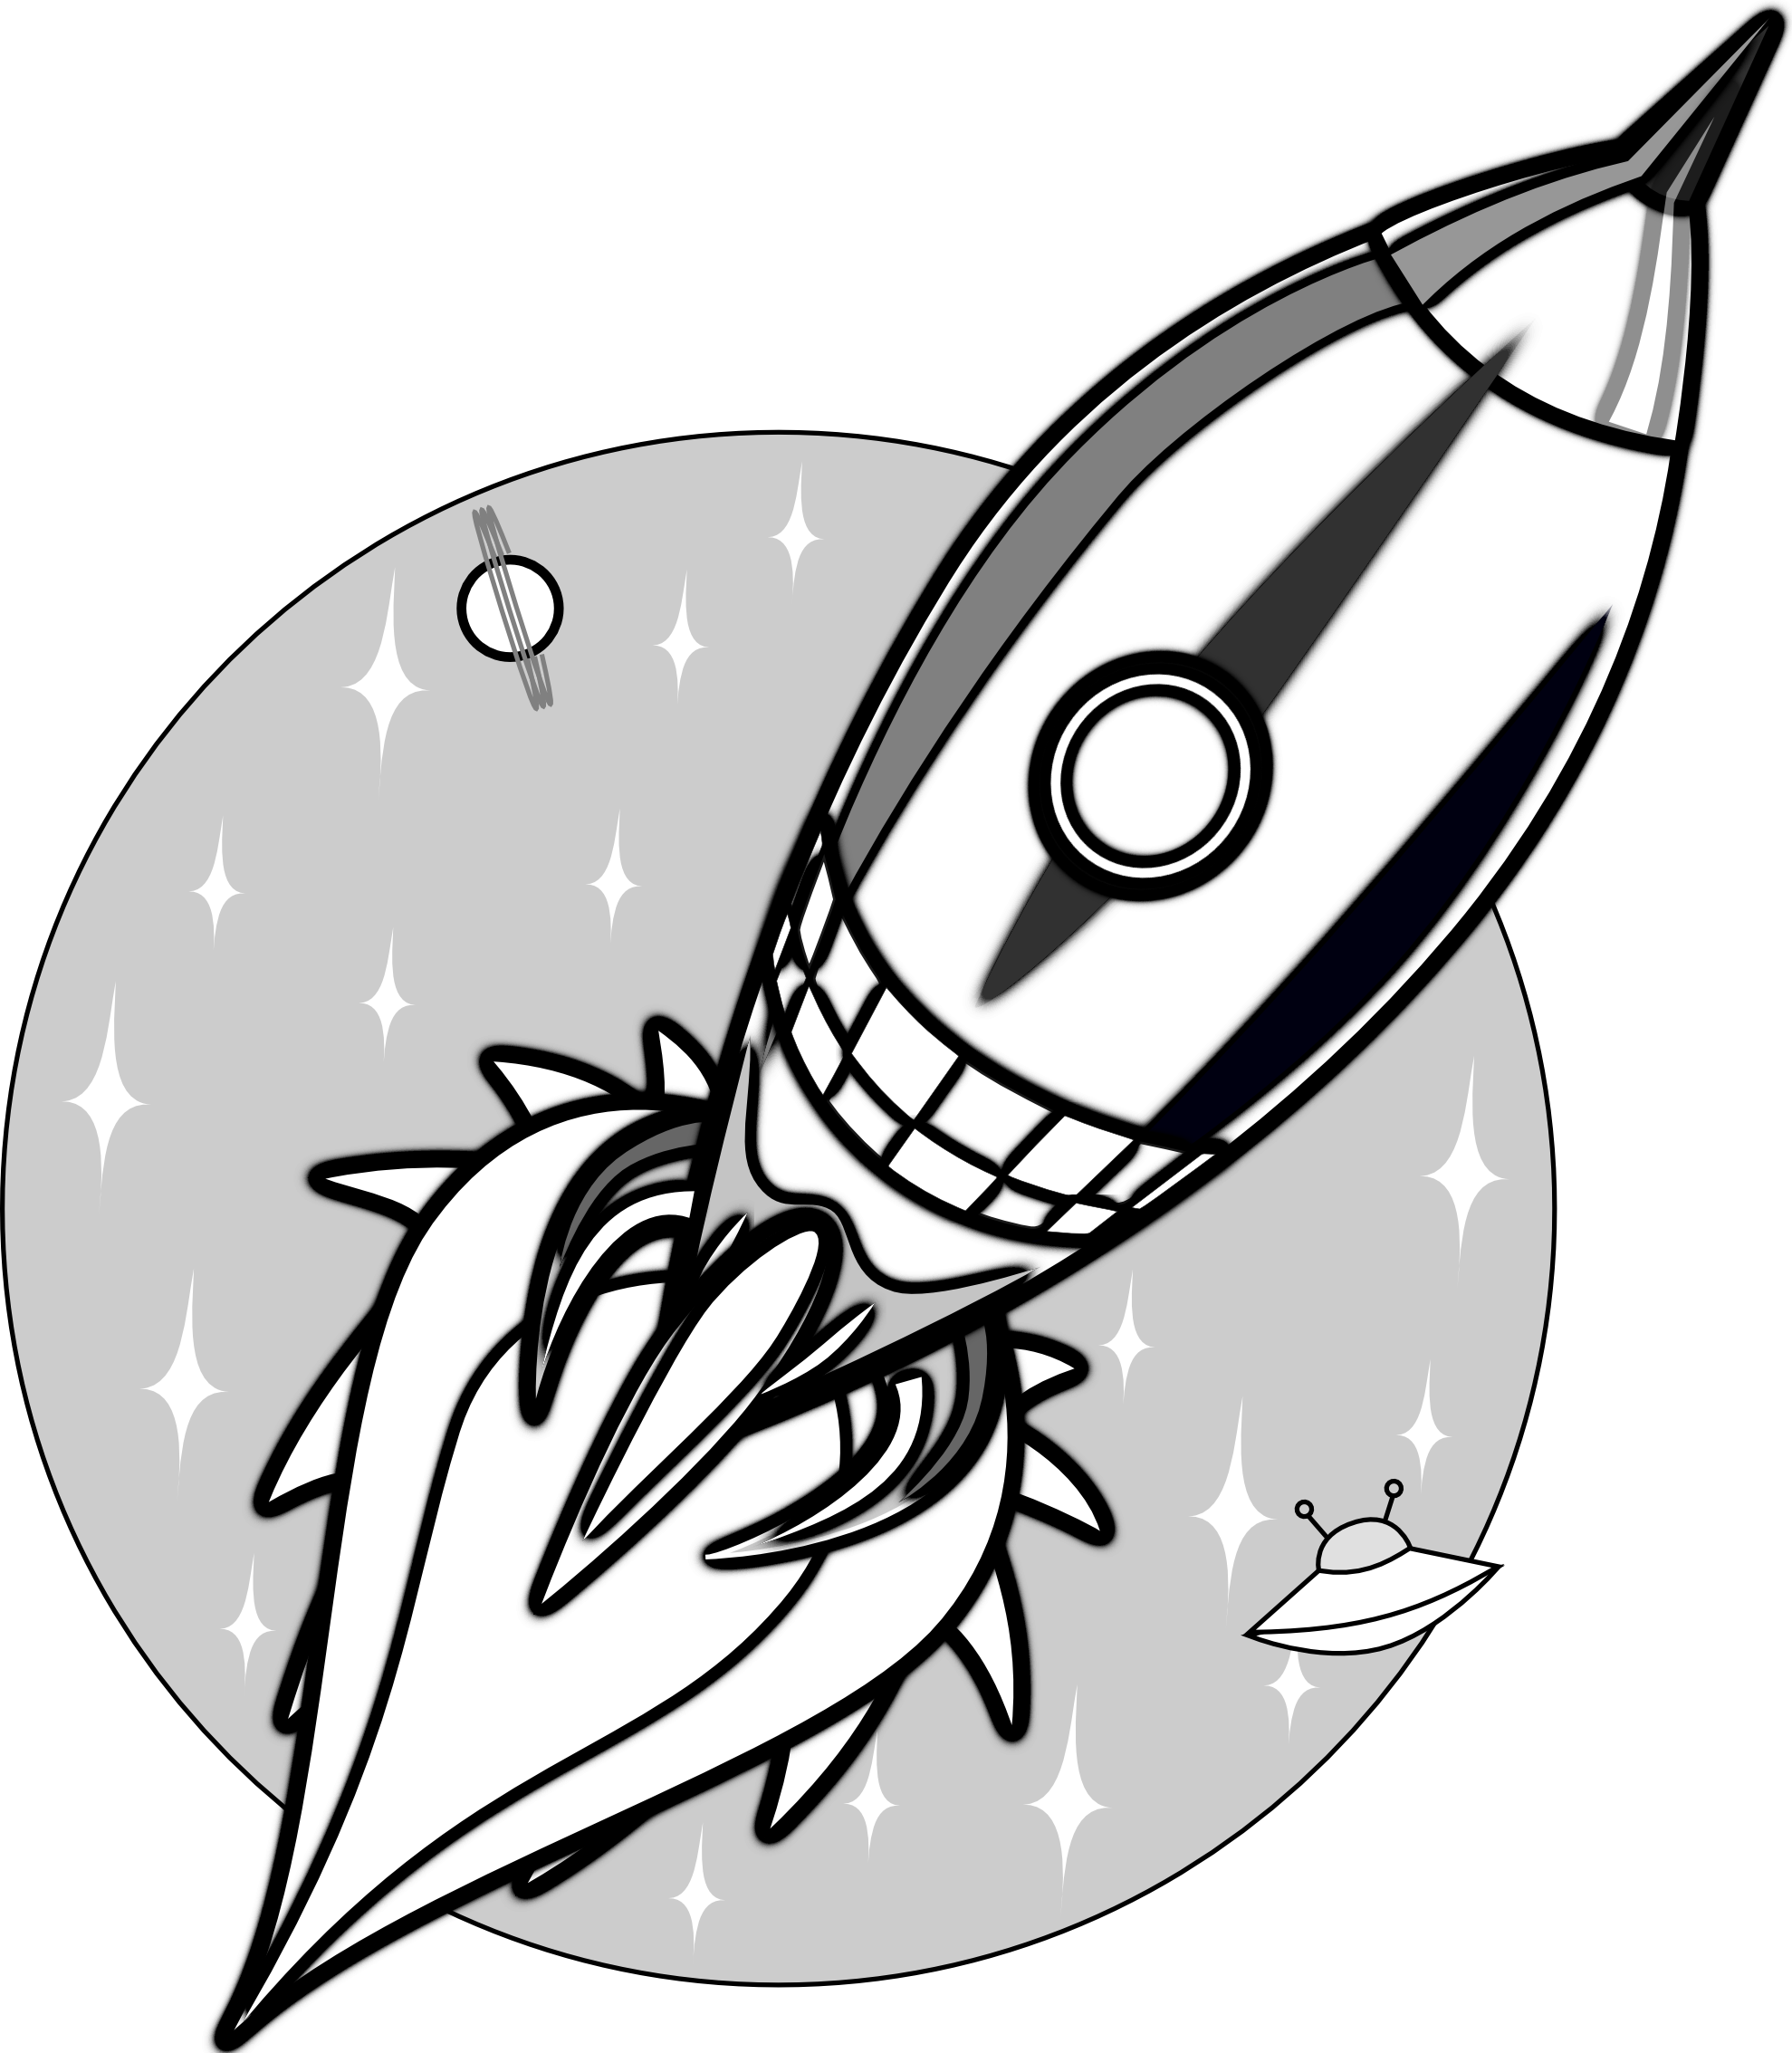 Images For > Rocket Clip Art Black And White in 2019.